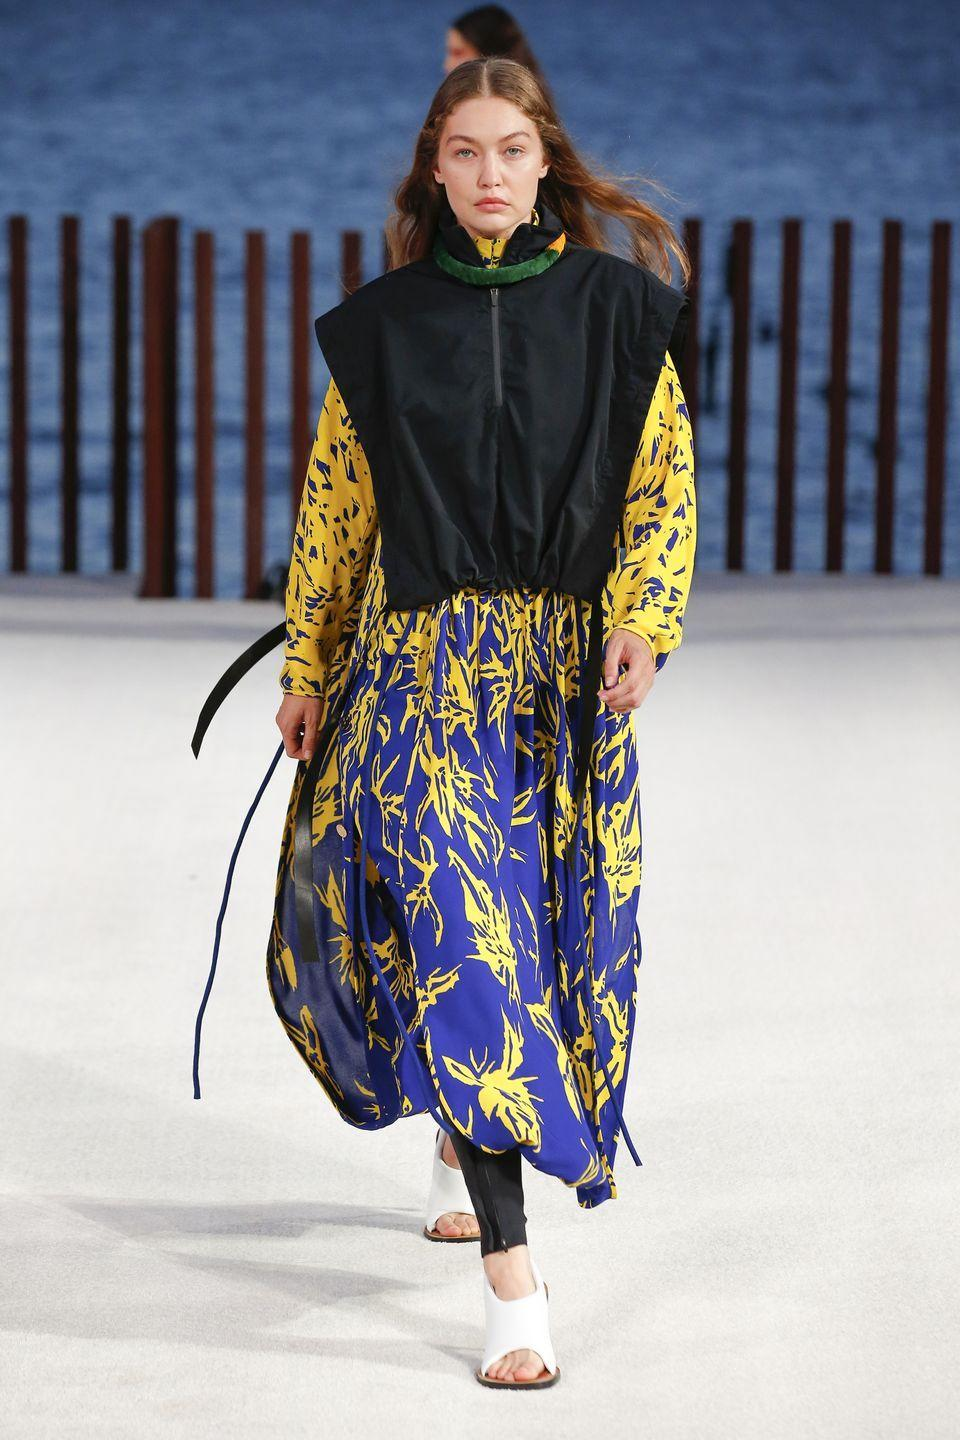 <p>Supermodel Gigi Hadid, who gave birth to her first baby late last year, was back on the New York Fashion Week runway, walking for Proenza Schouler, which presented its 'Little Island' collection. Inspired by a trip to Kauai that creative directors Lazaro Hernandez and Jack McCollough took after lockdown, the collection was all about easy breezy summer dressing with bold pops of sunshine-inspired colour and floaty fabrics.</p>